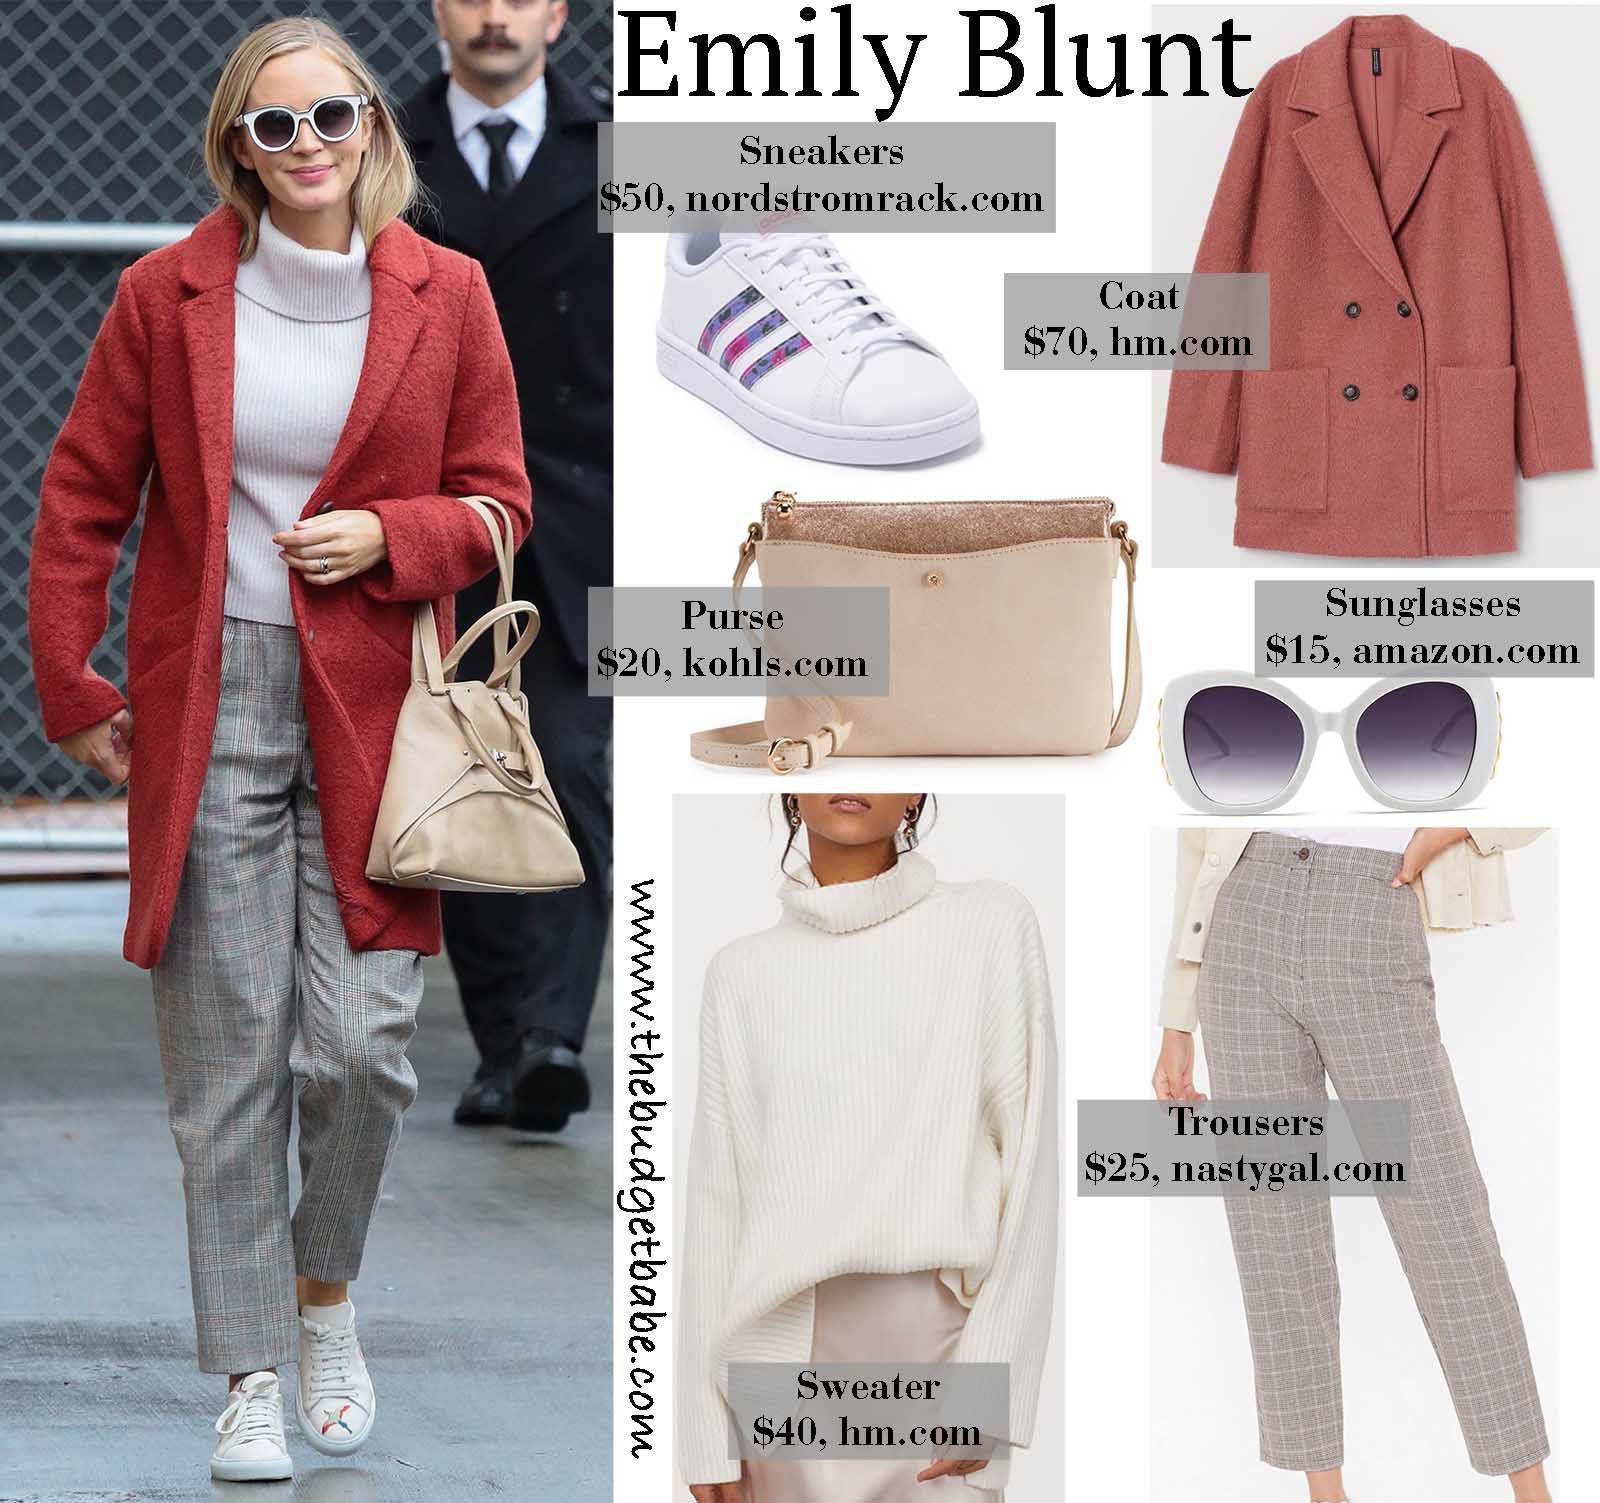 Emily Blunt stays warms in a cheery rose coat!